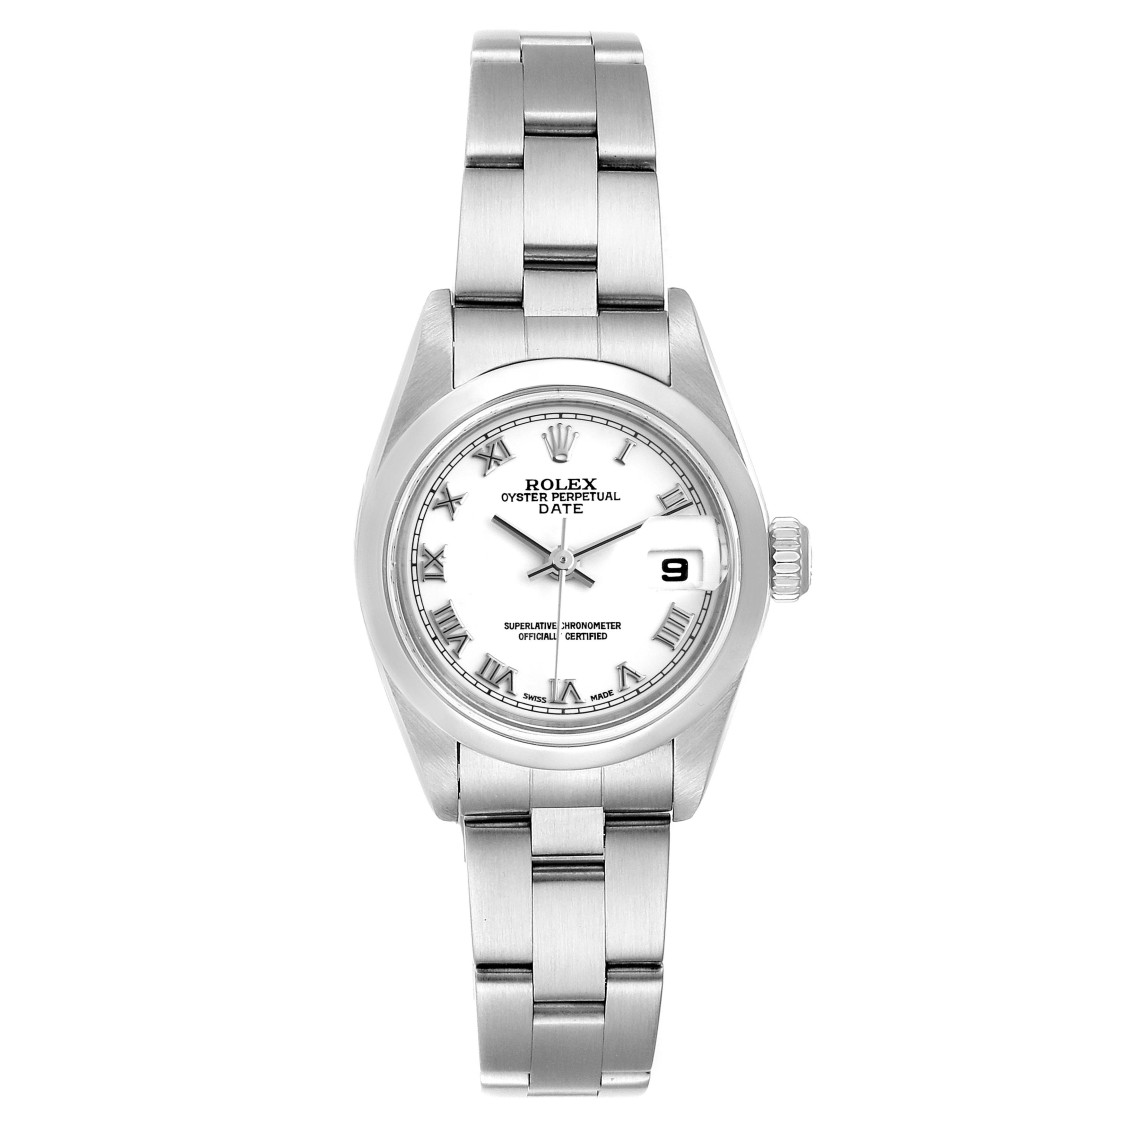 Rolex DATE WHITE DIAL DOMED BEZEL STEEL LADIES WATCH 79160 BOX PAPERS